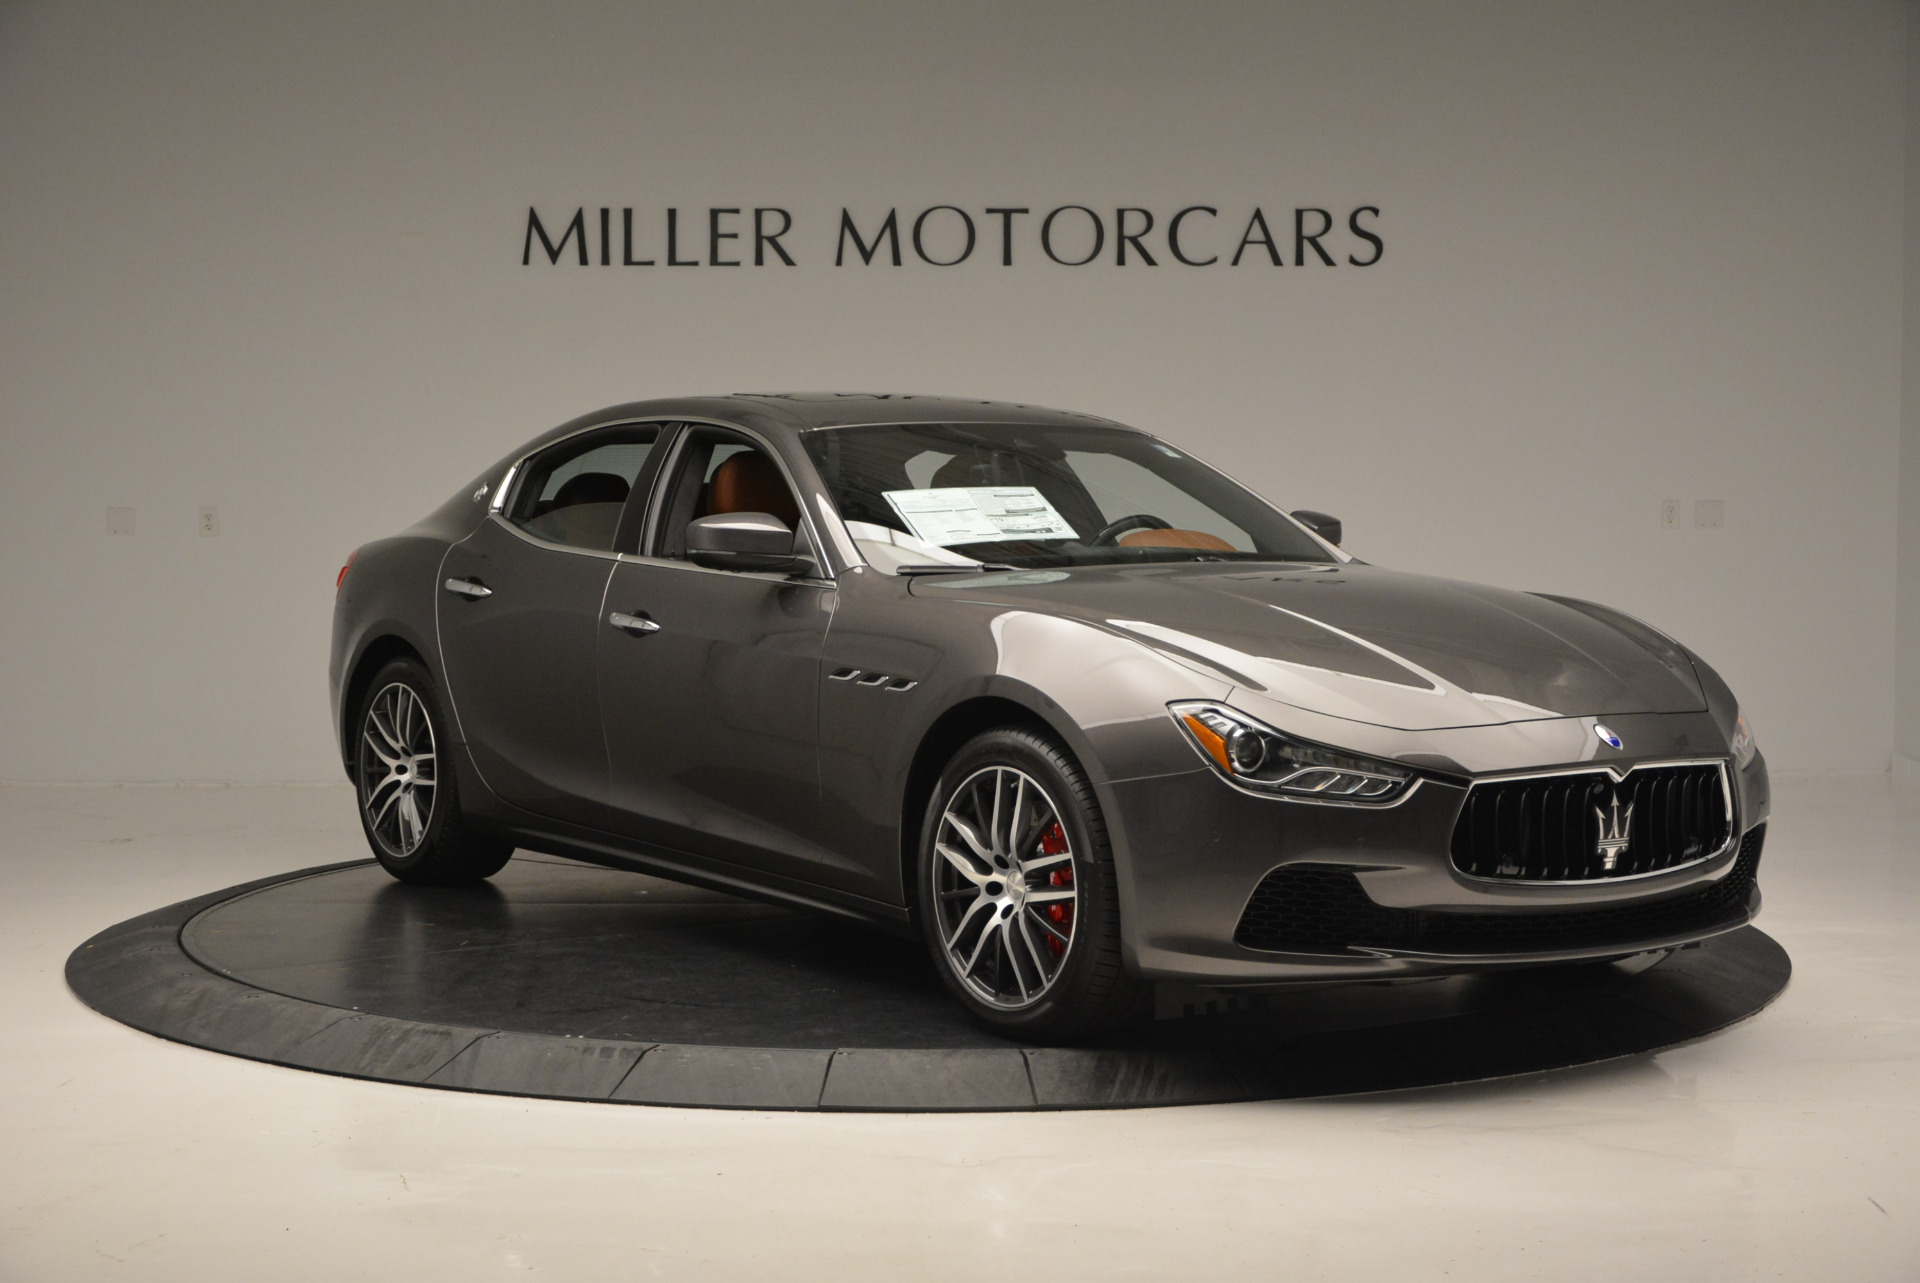 New 2017 Maserati Ghibli S Q4 For Sale In Greenwich, CT 574_p11